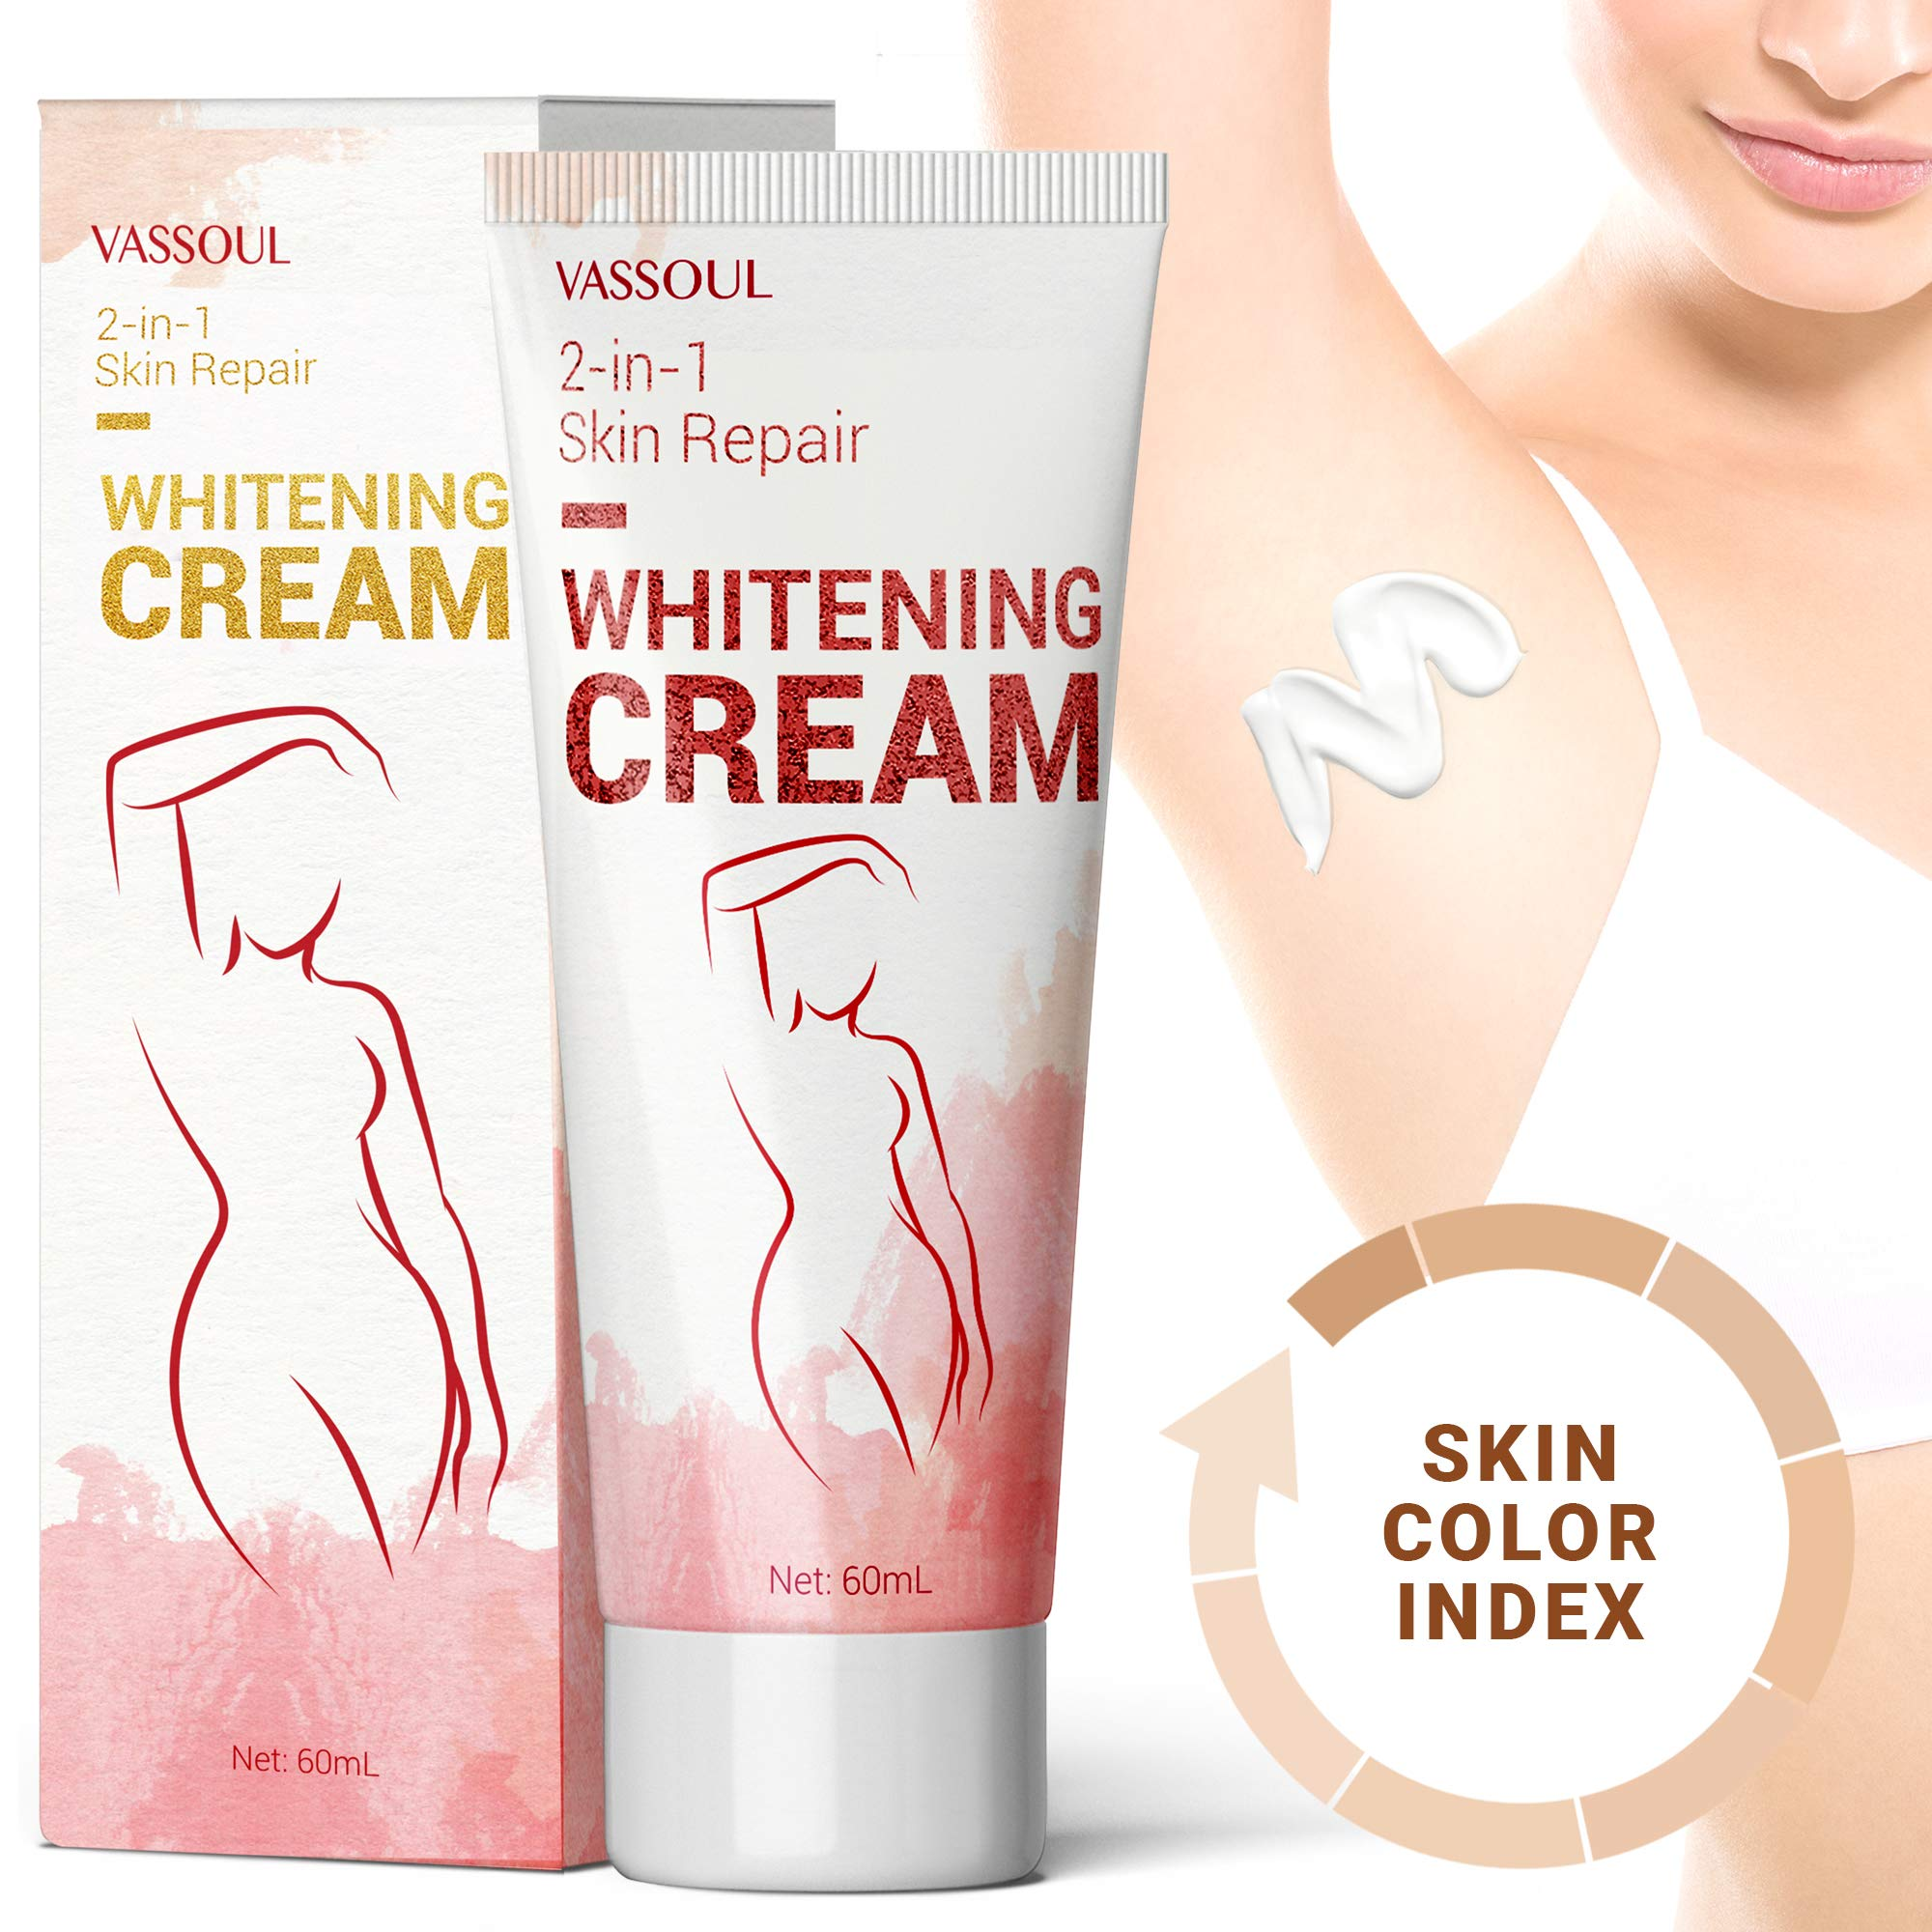 Vassoul Skin Underarm Whitening Cream - Lighten & Brighten Armpit, Bikini, Elbow, Private and Sensitive Areas (60mL)